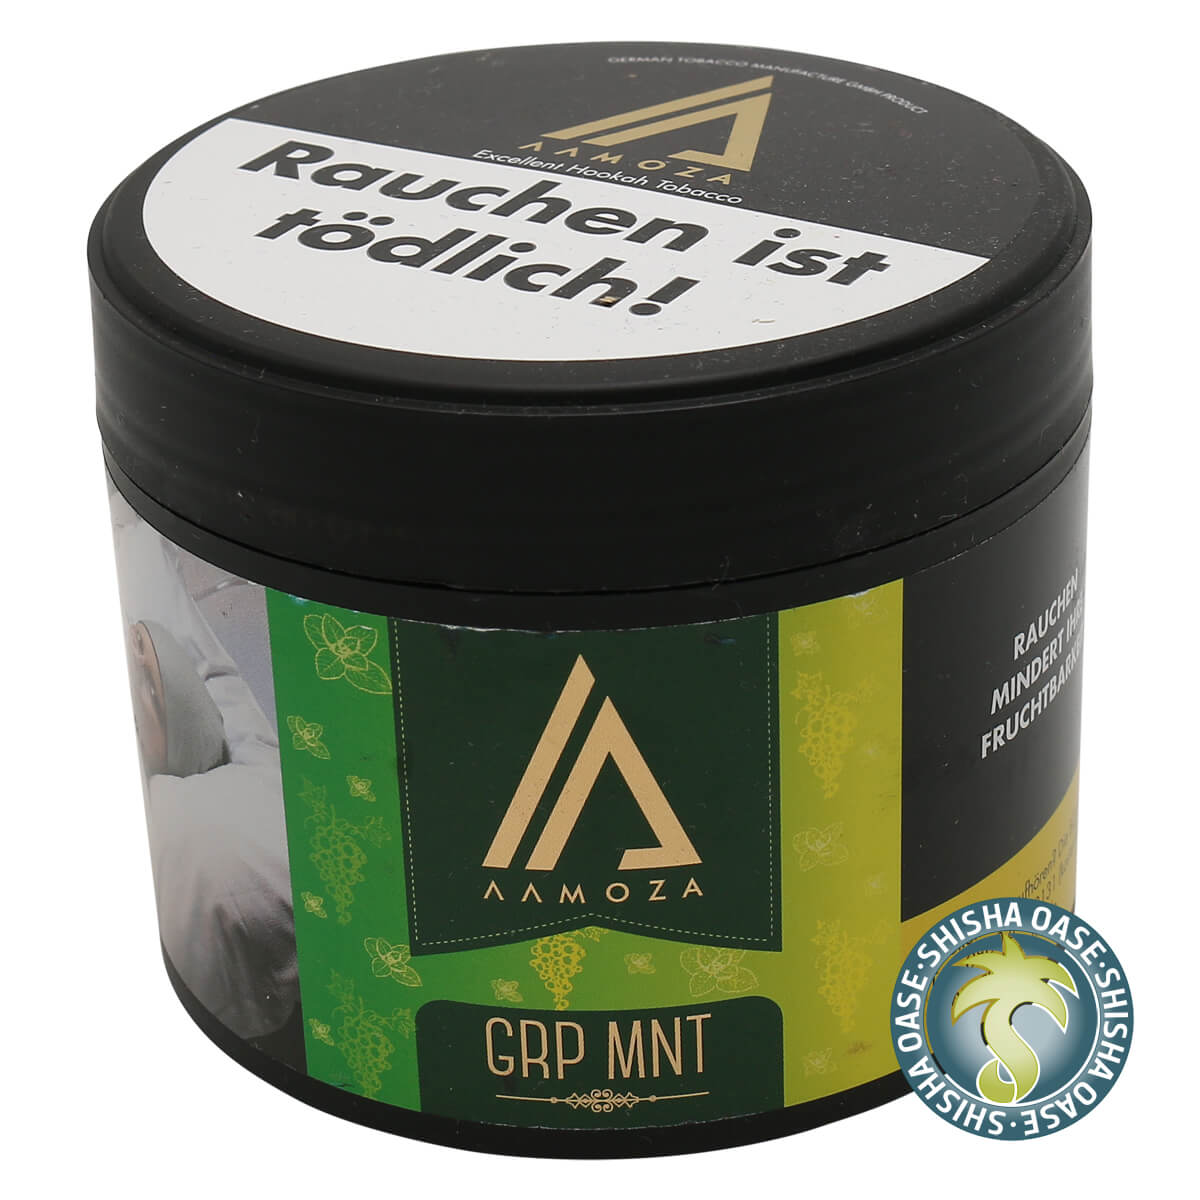 Aamoza Tabak 200g | GRP Mnt